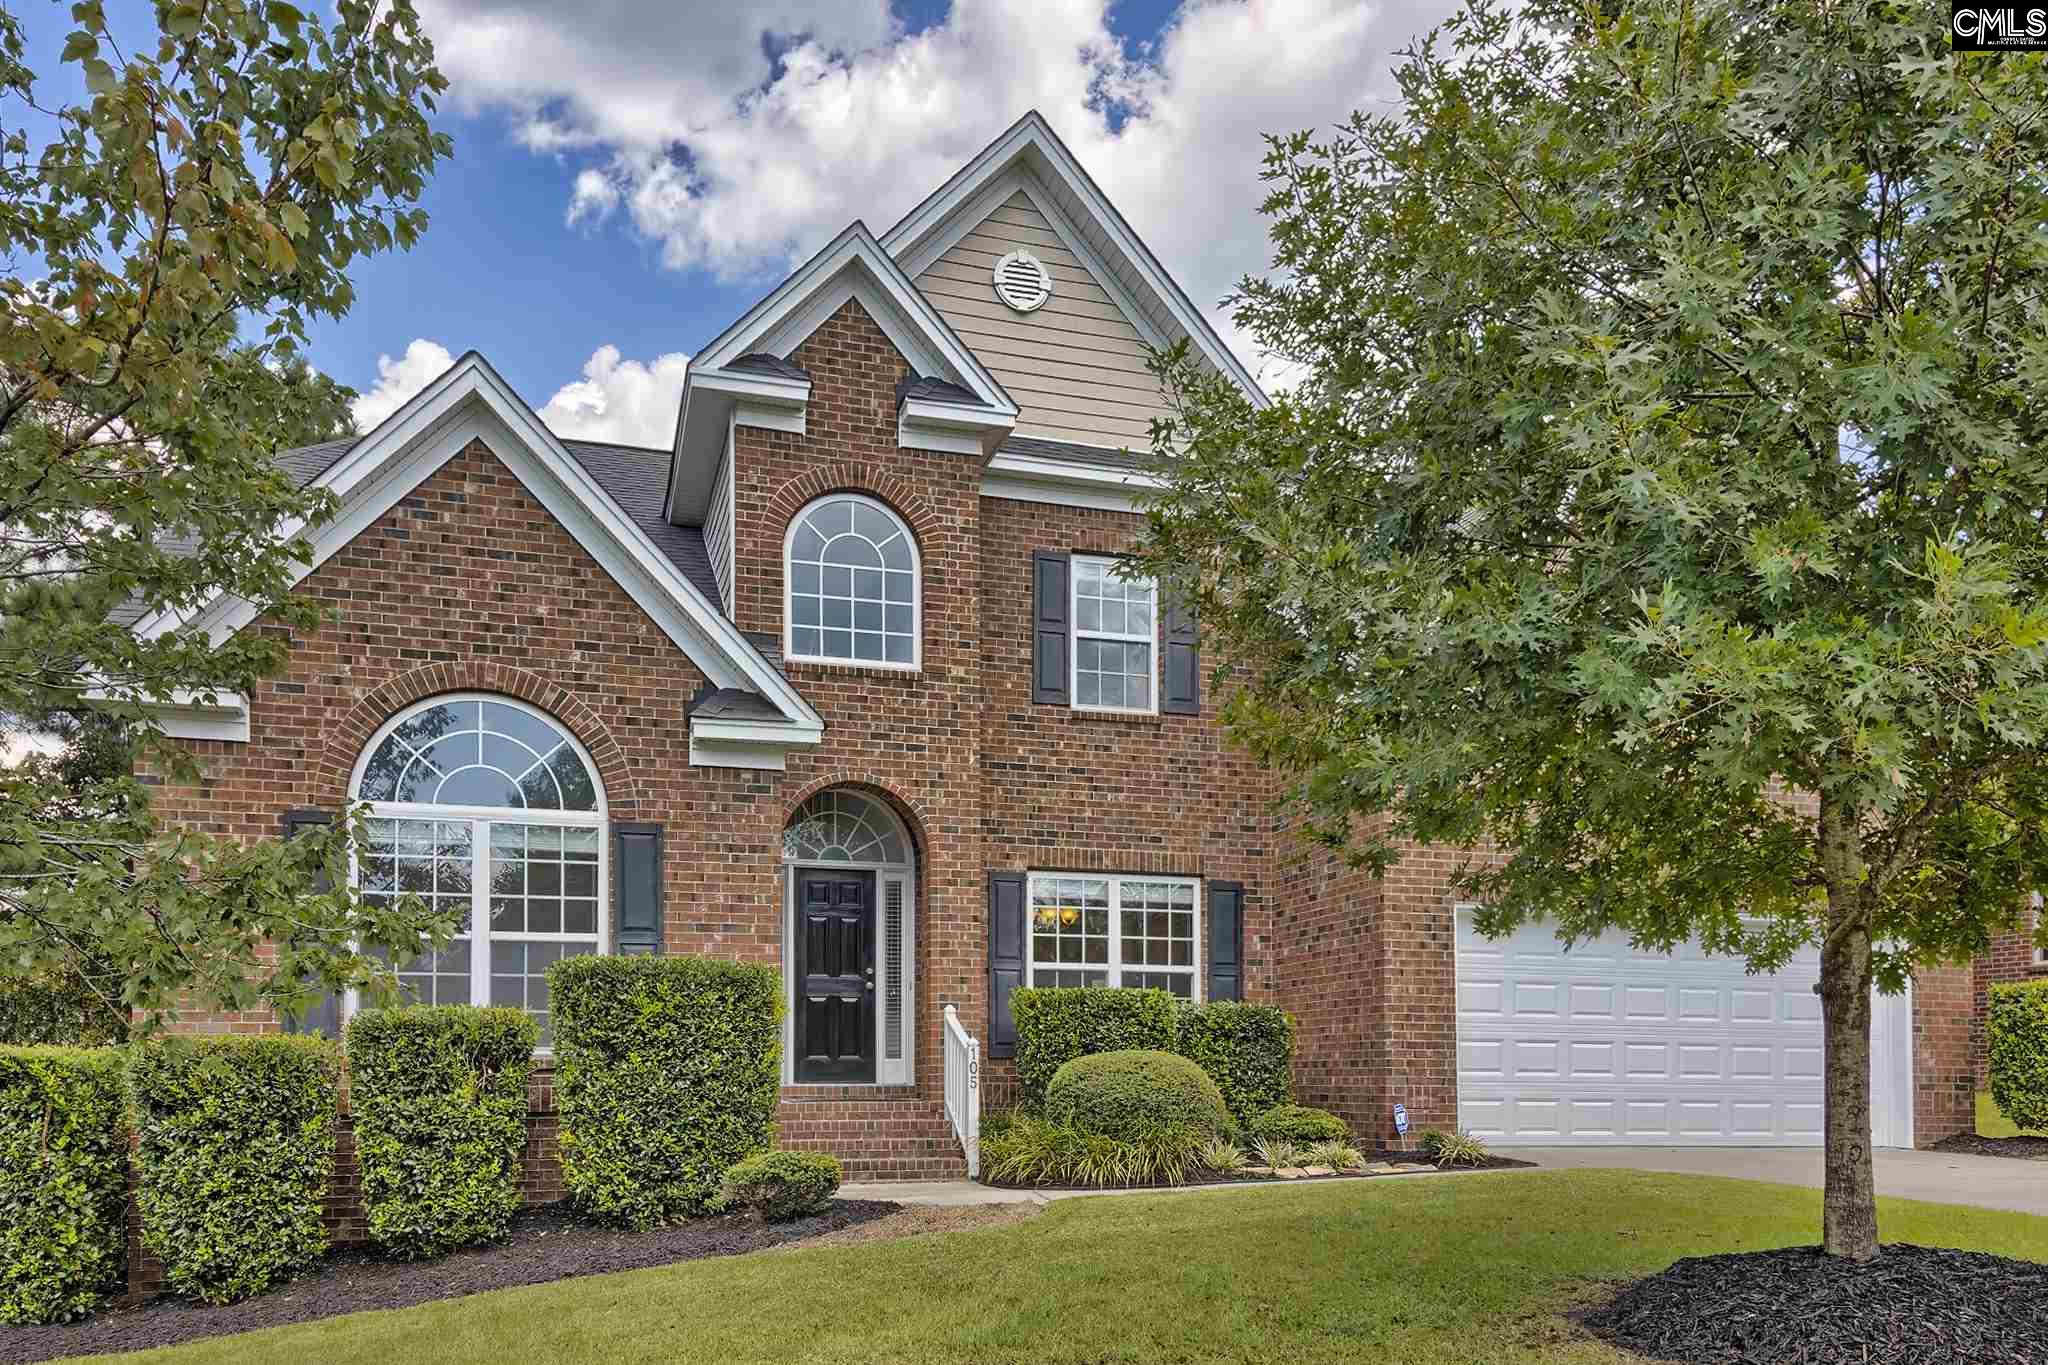 105 Carolina Ridge Columbia, SC 29229-7397